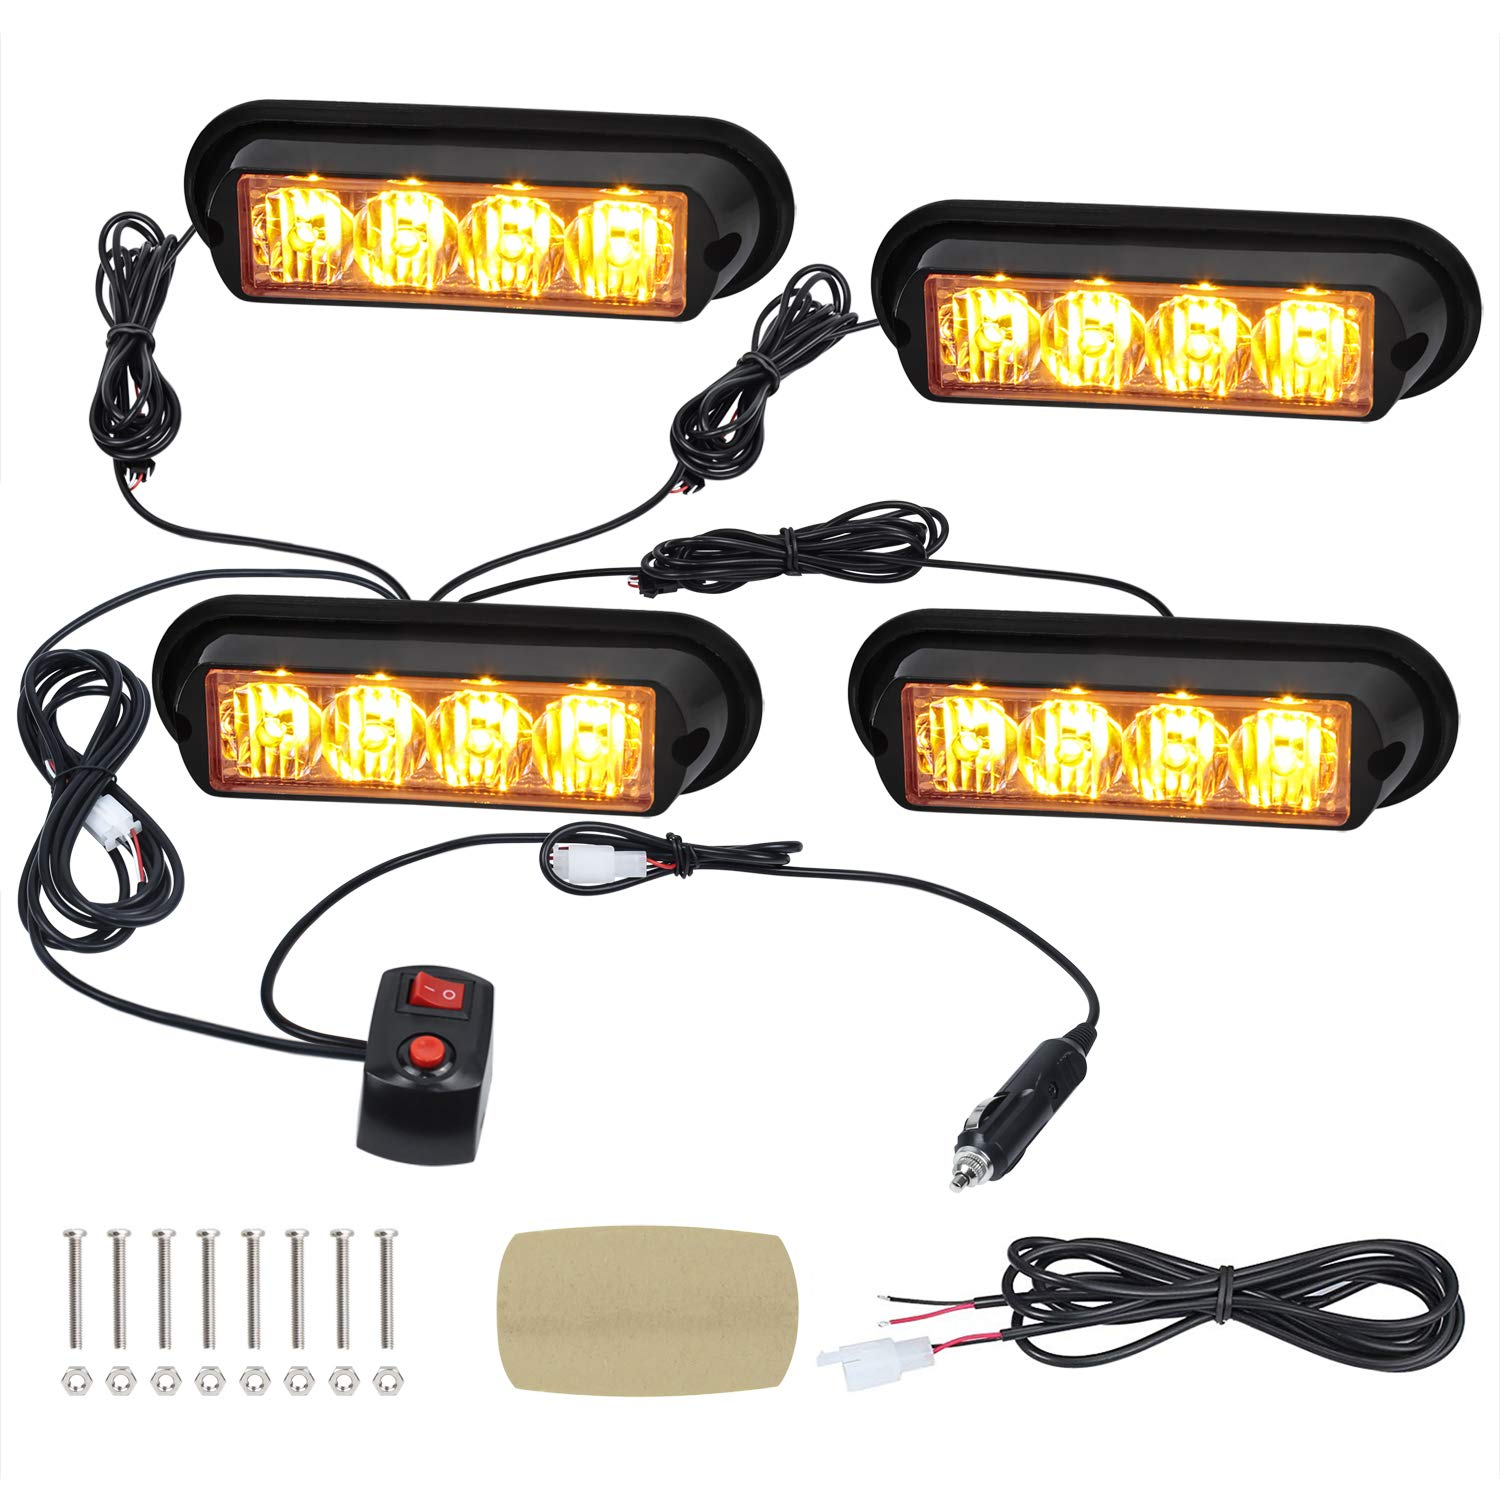 Linkitom 4pcs 12V-24V Amber Sync Feature Surface Mount Grille Warning Safety Flashing Beacon Strobe Lights with Cigar Lighter for Construction Vehicle SUV Tow Truck Van